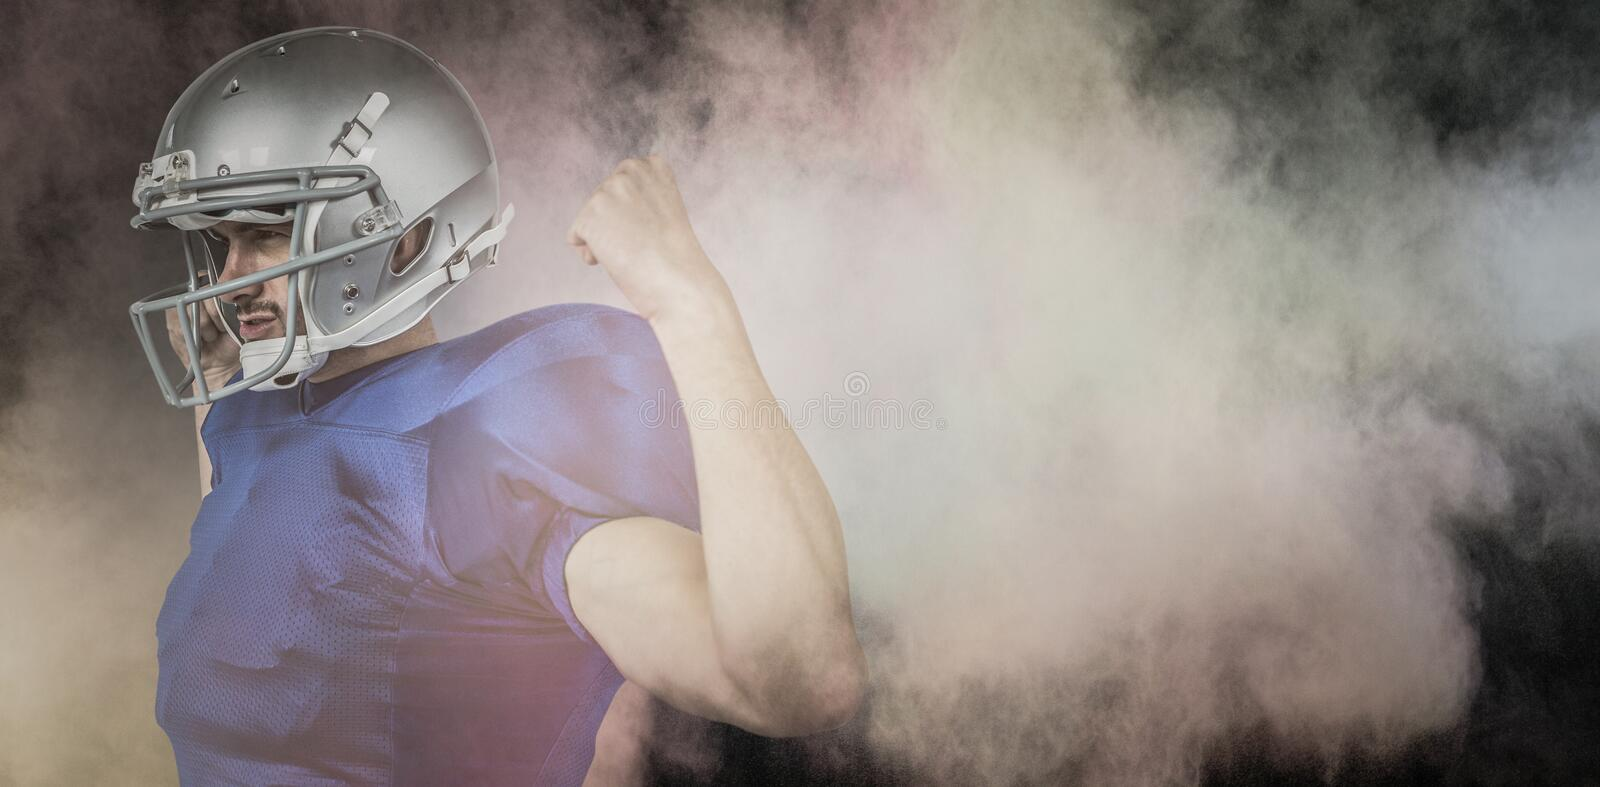 Composite image of confident american football player flexing muscles stock photo